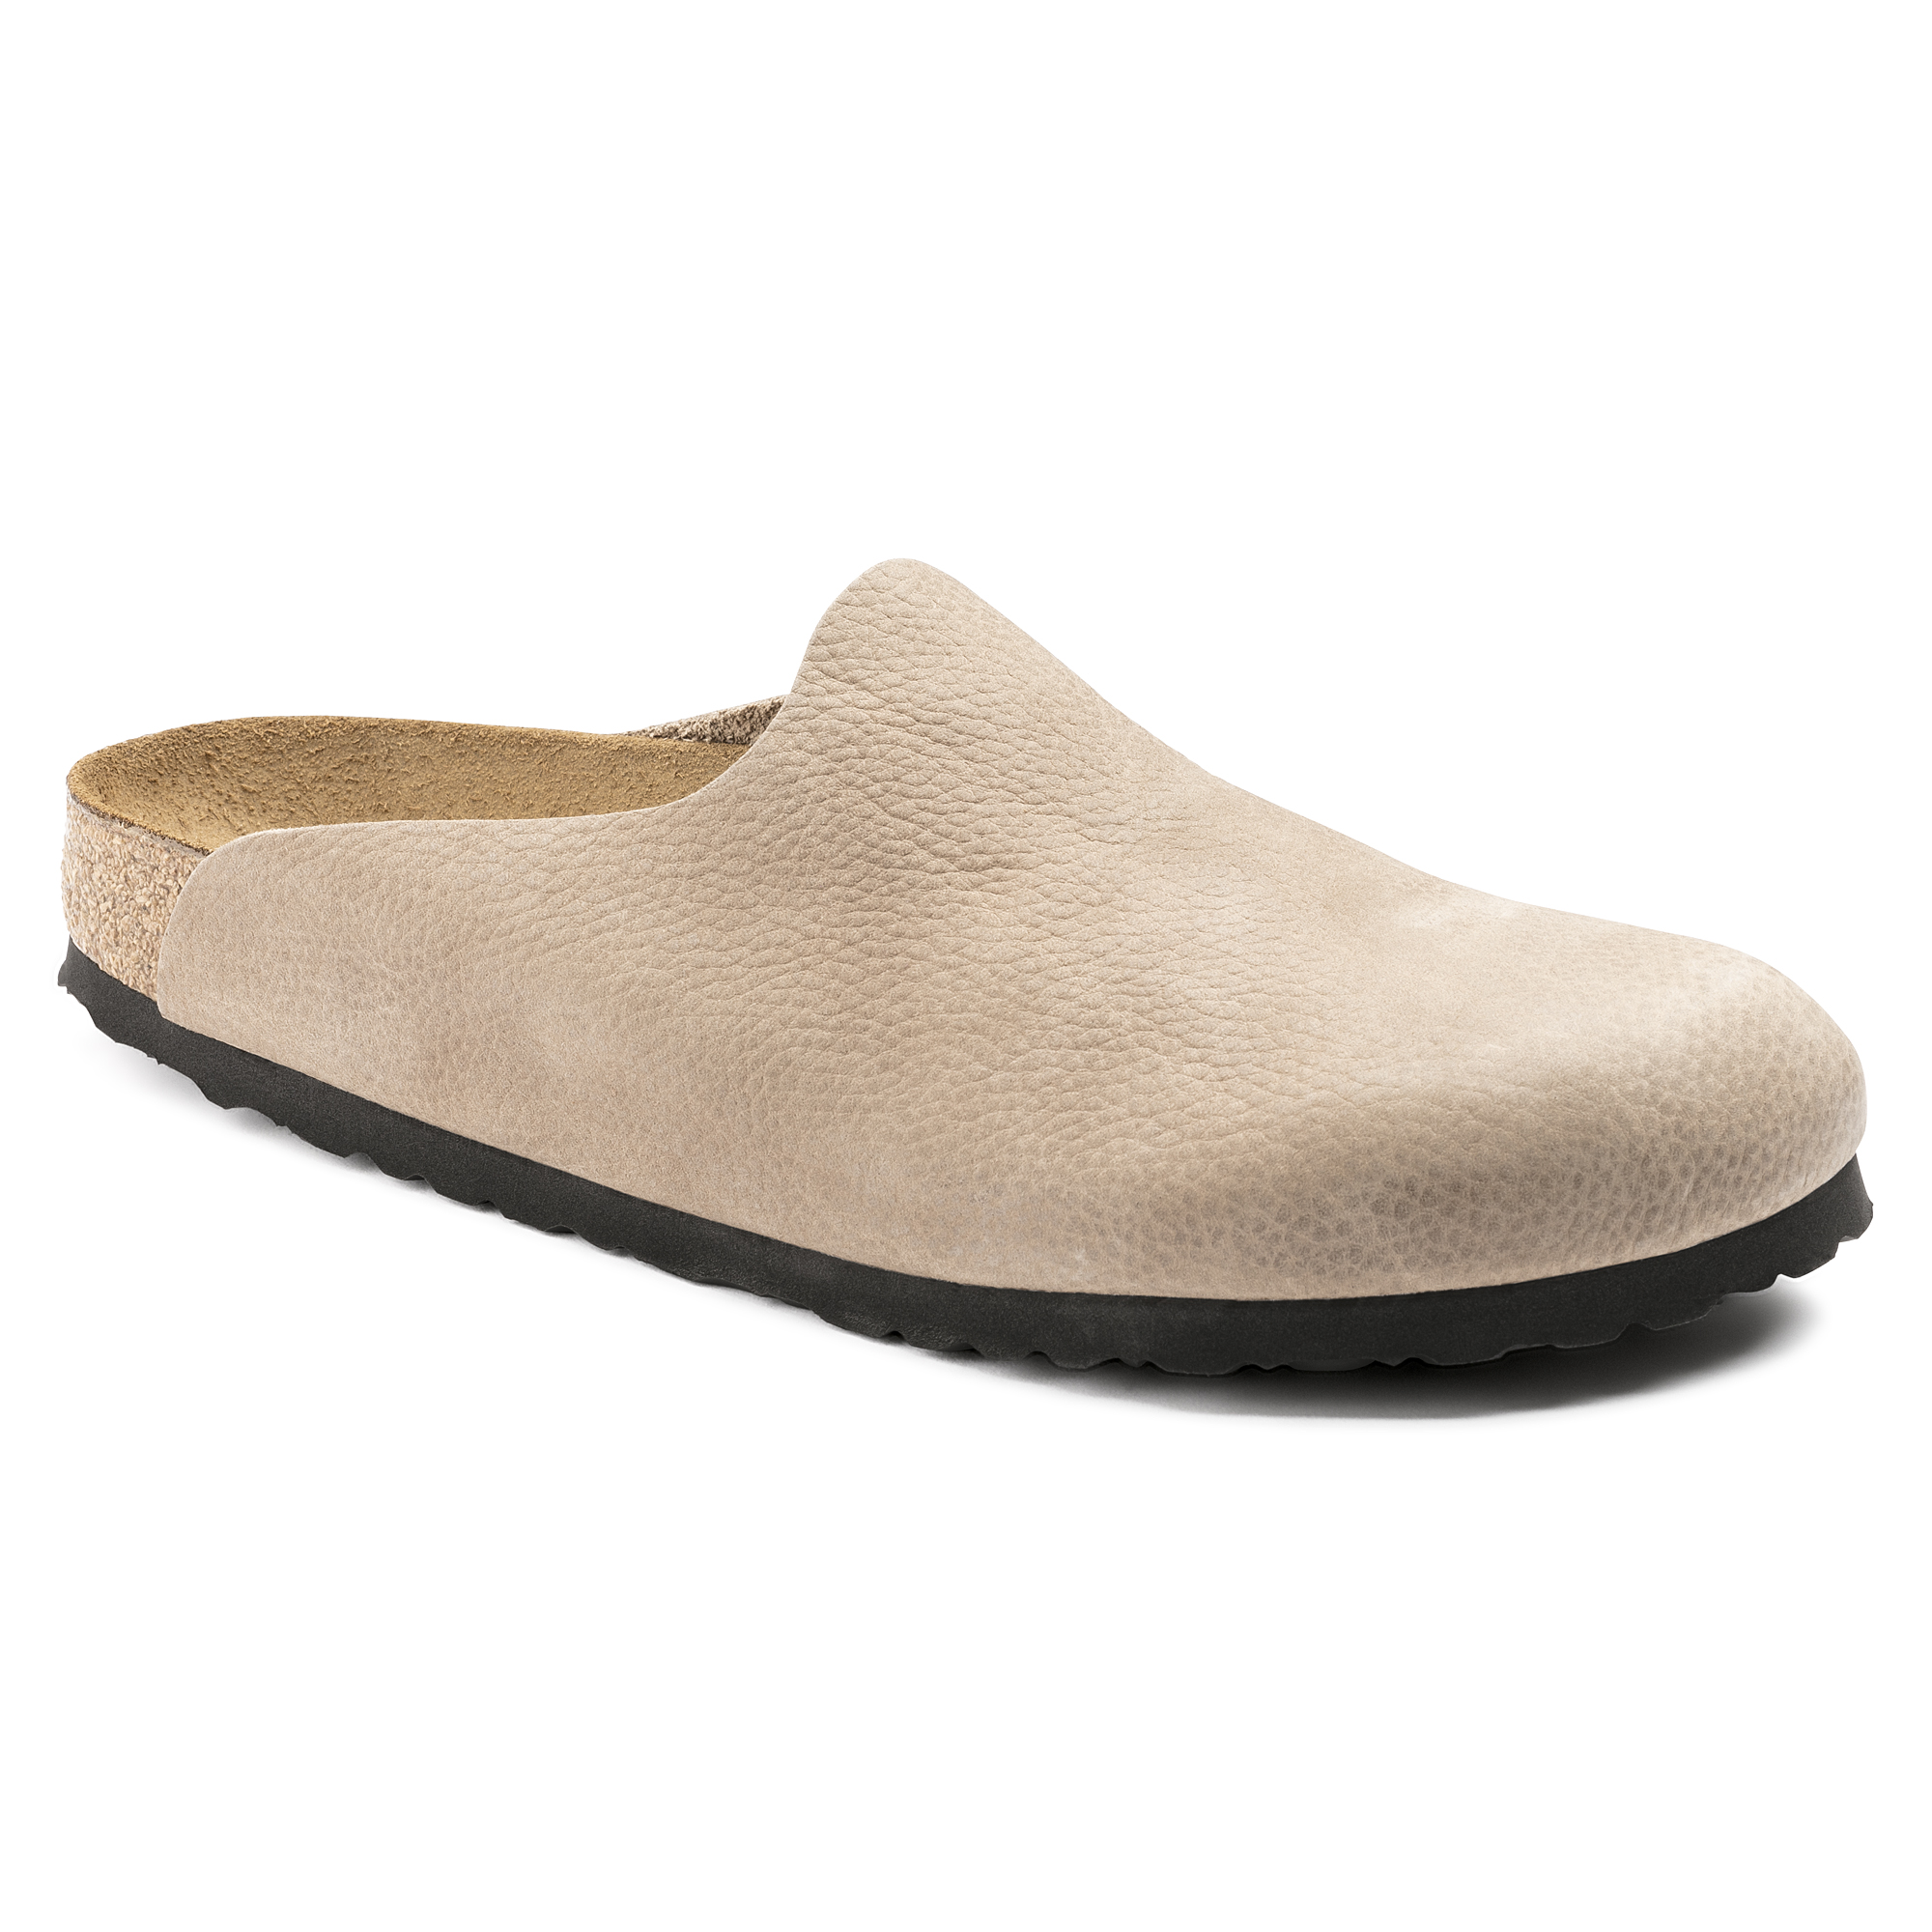 9d5e2359316 Amsterdam Nubuck Leather Steer Taupe